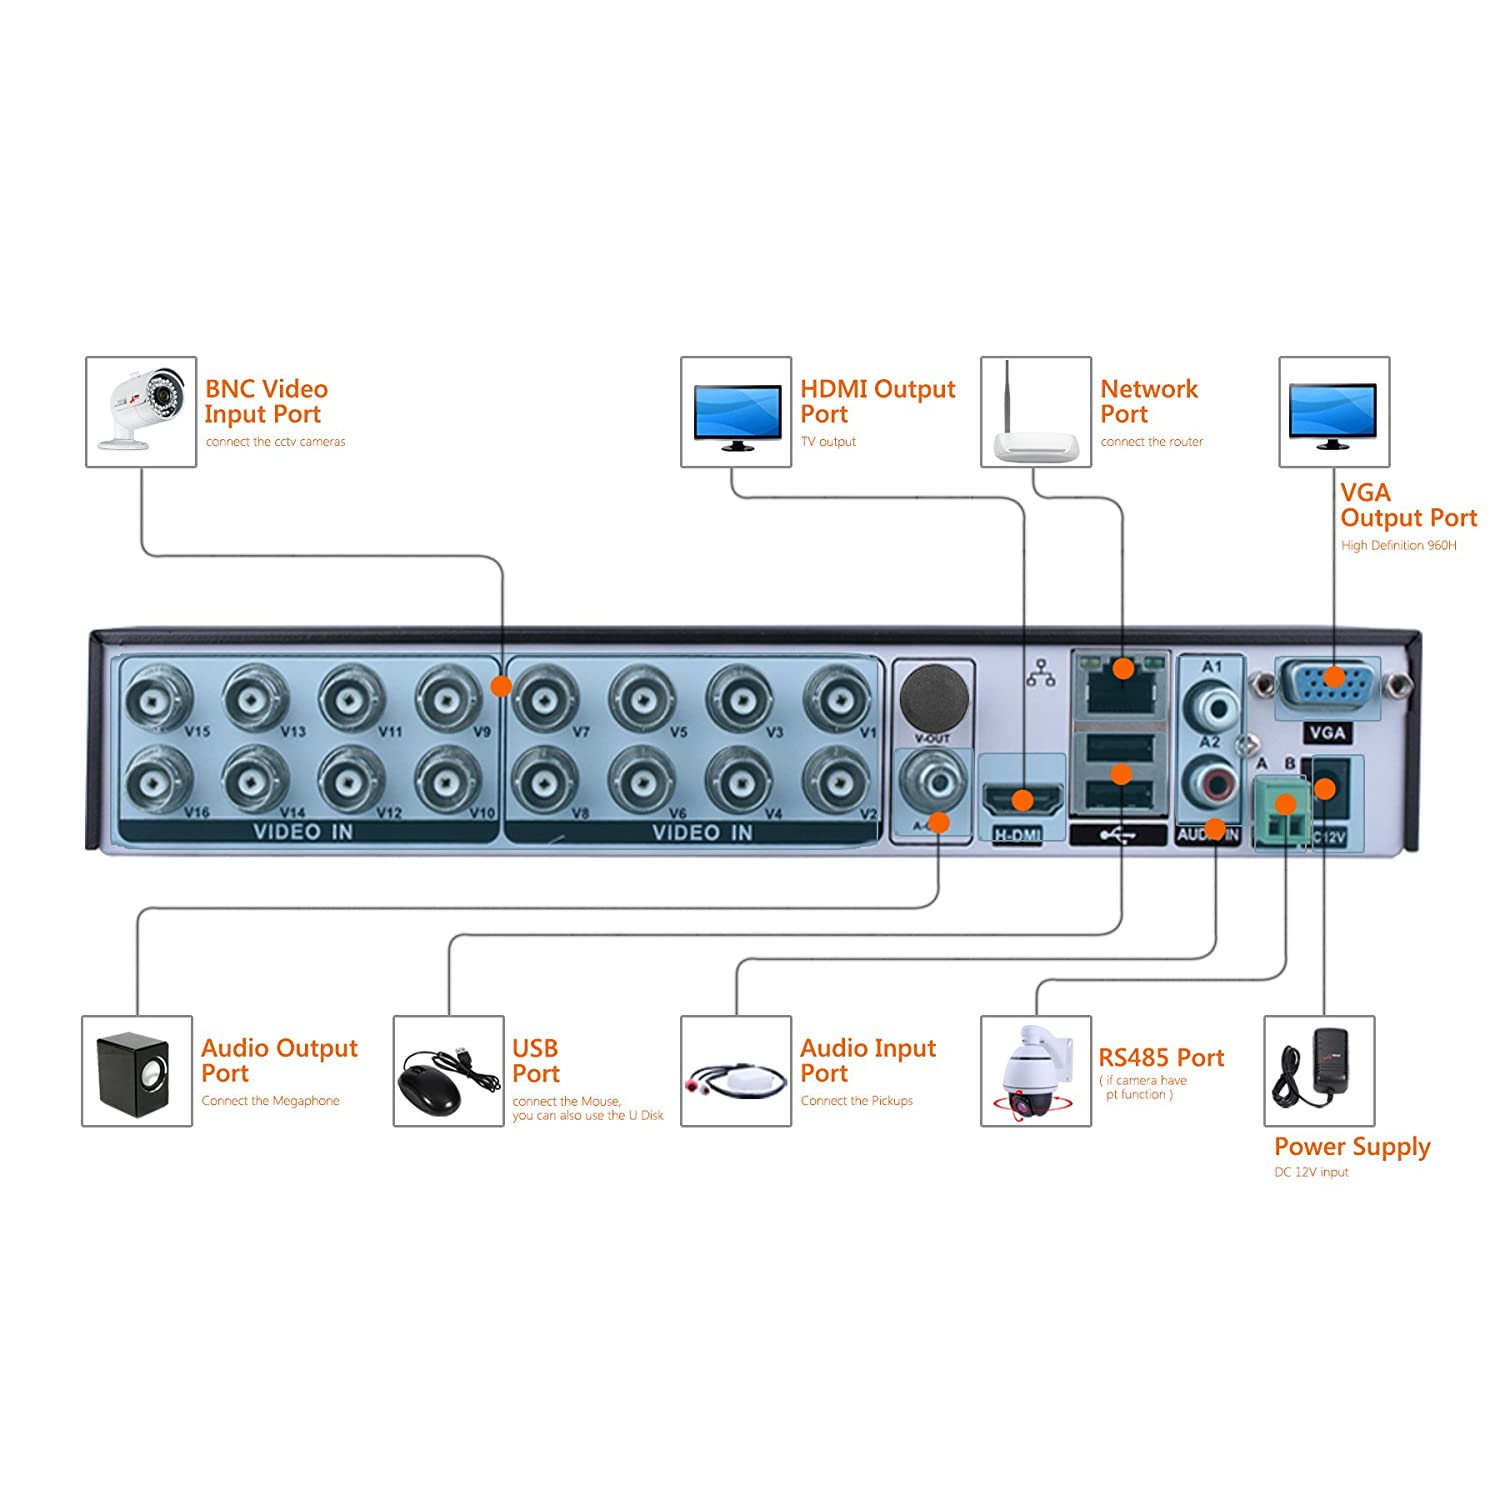 16 Port Cctv Camera Wiring Diagram 5 In 1 Anran 16ch Security Dvr 1080n Ahd Nvr Hd Digital Video Recorder For System Suport Mobile Phone Monitoringmotion